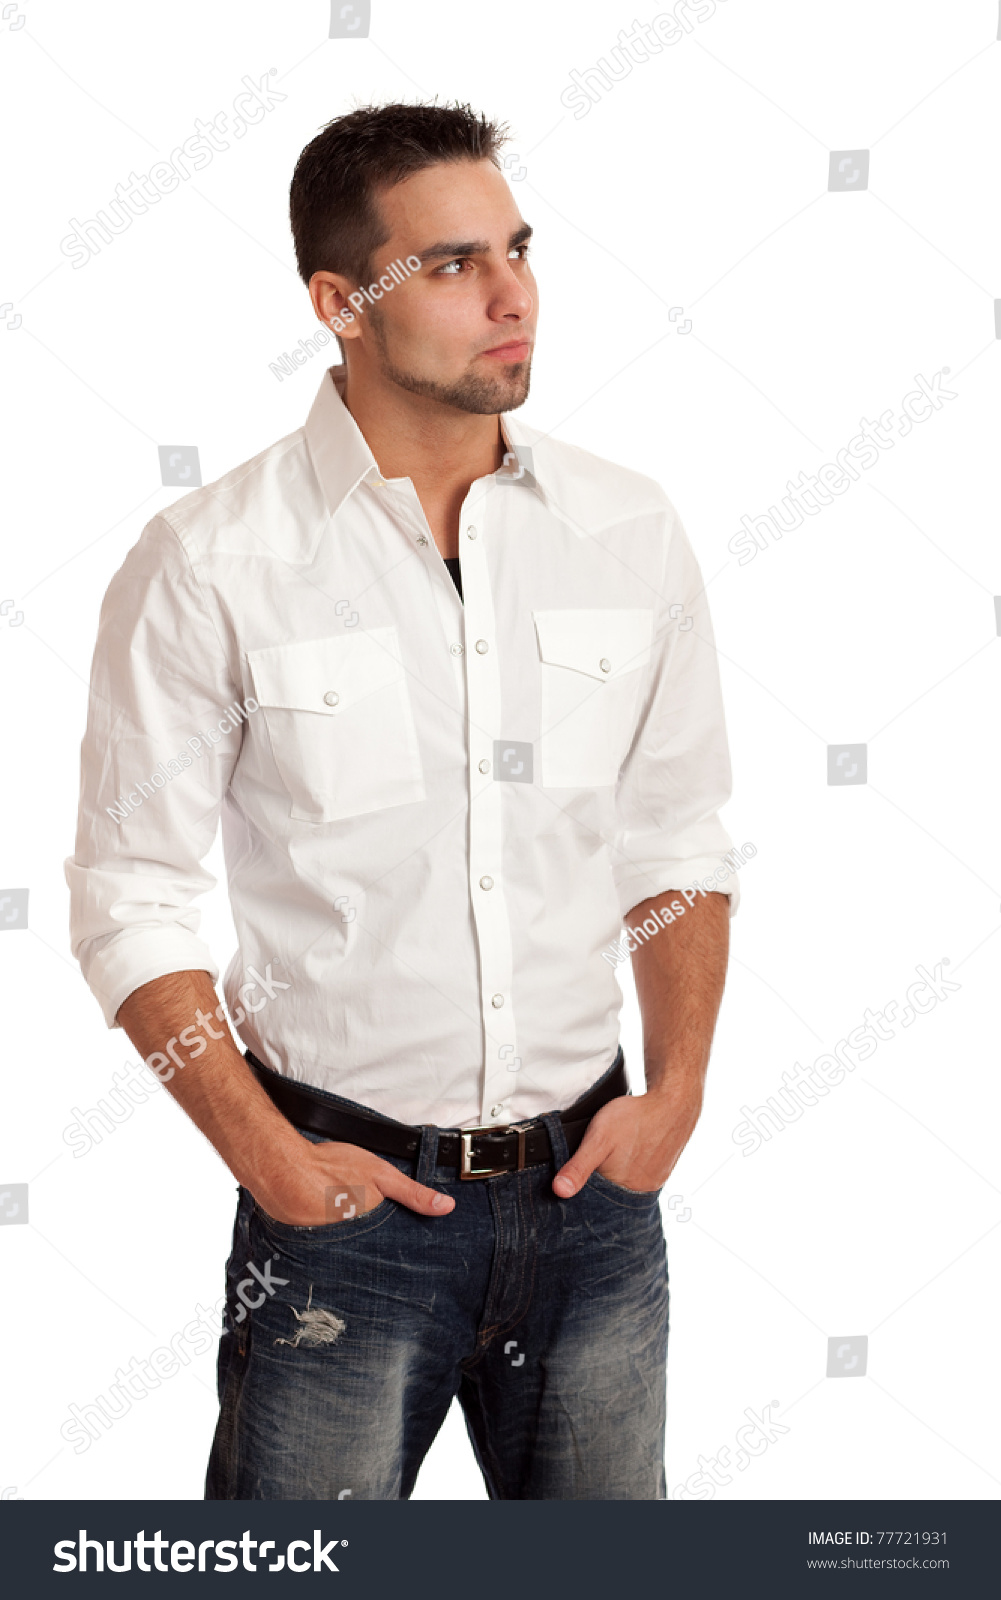 Man With White Shirt